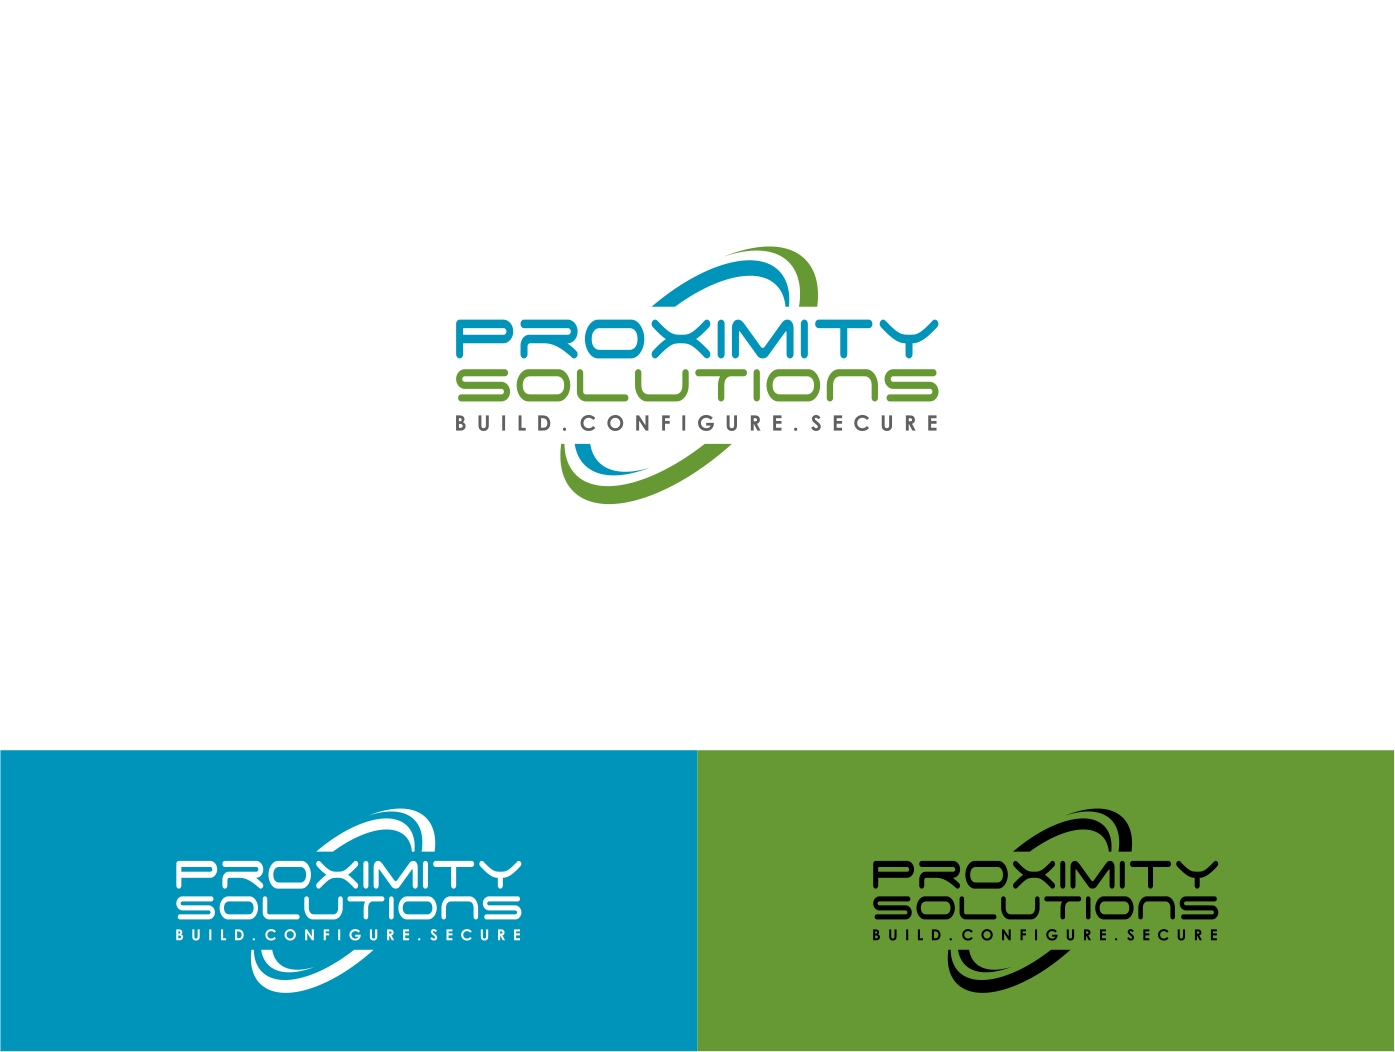 Logo Design by haidu - Entry No. 128 in the Logo Design Contest New Logo Design for Proximity Solutions.